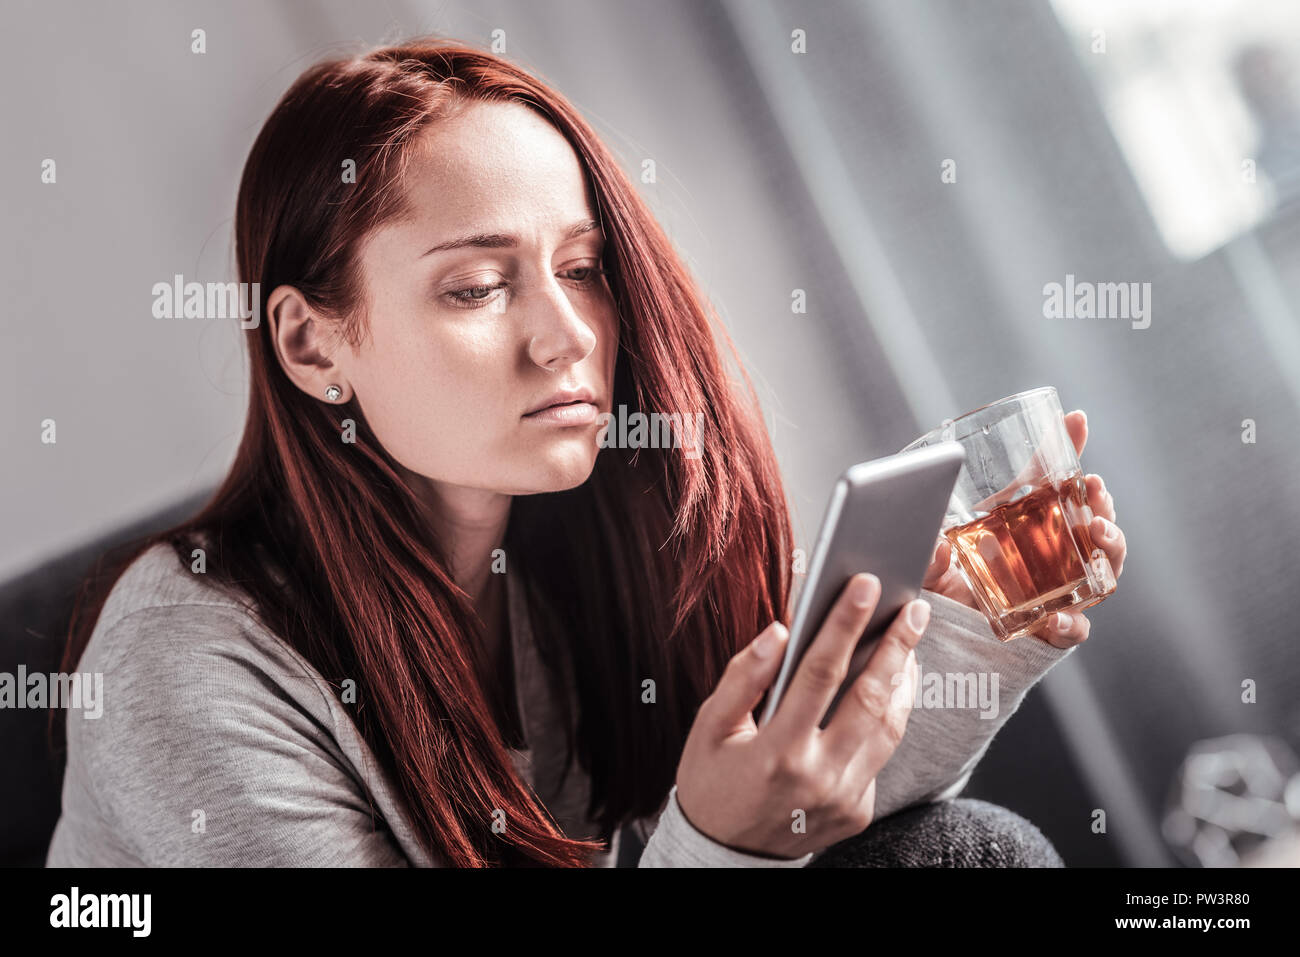 Depressed unhappy woman using her smartphone - Stock Image